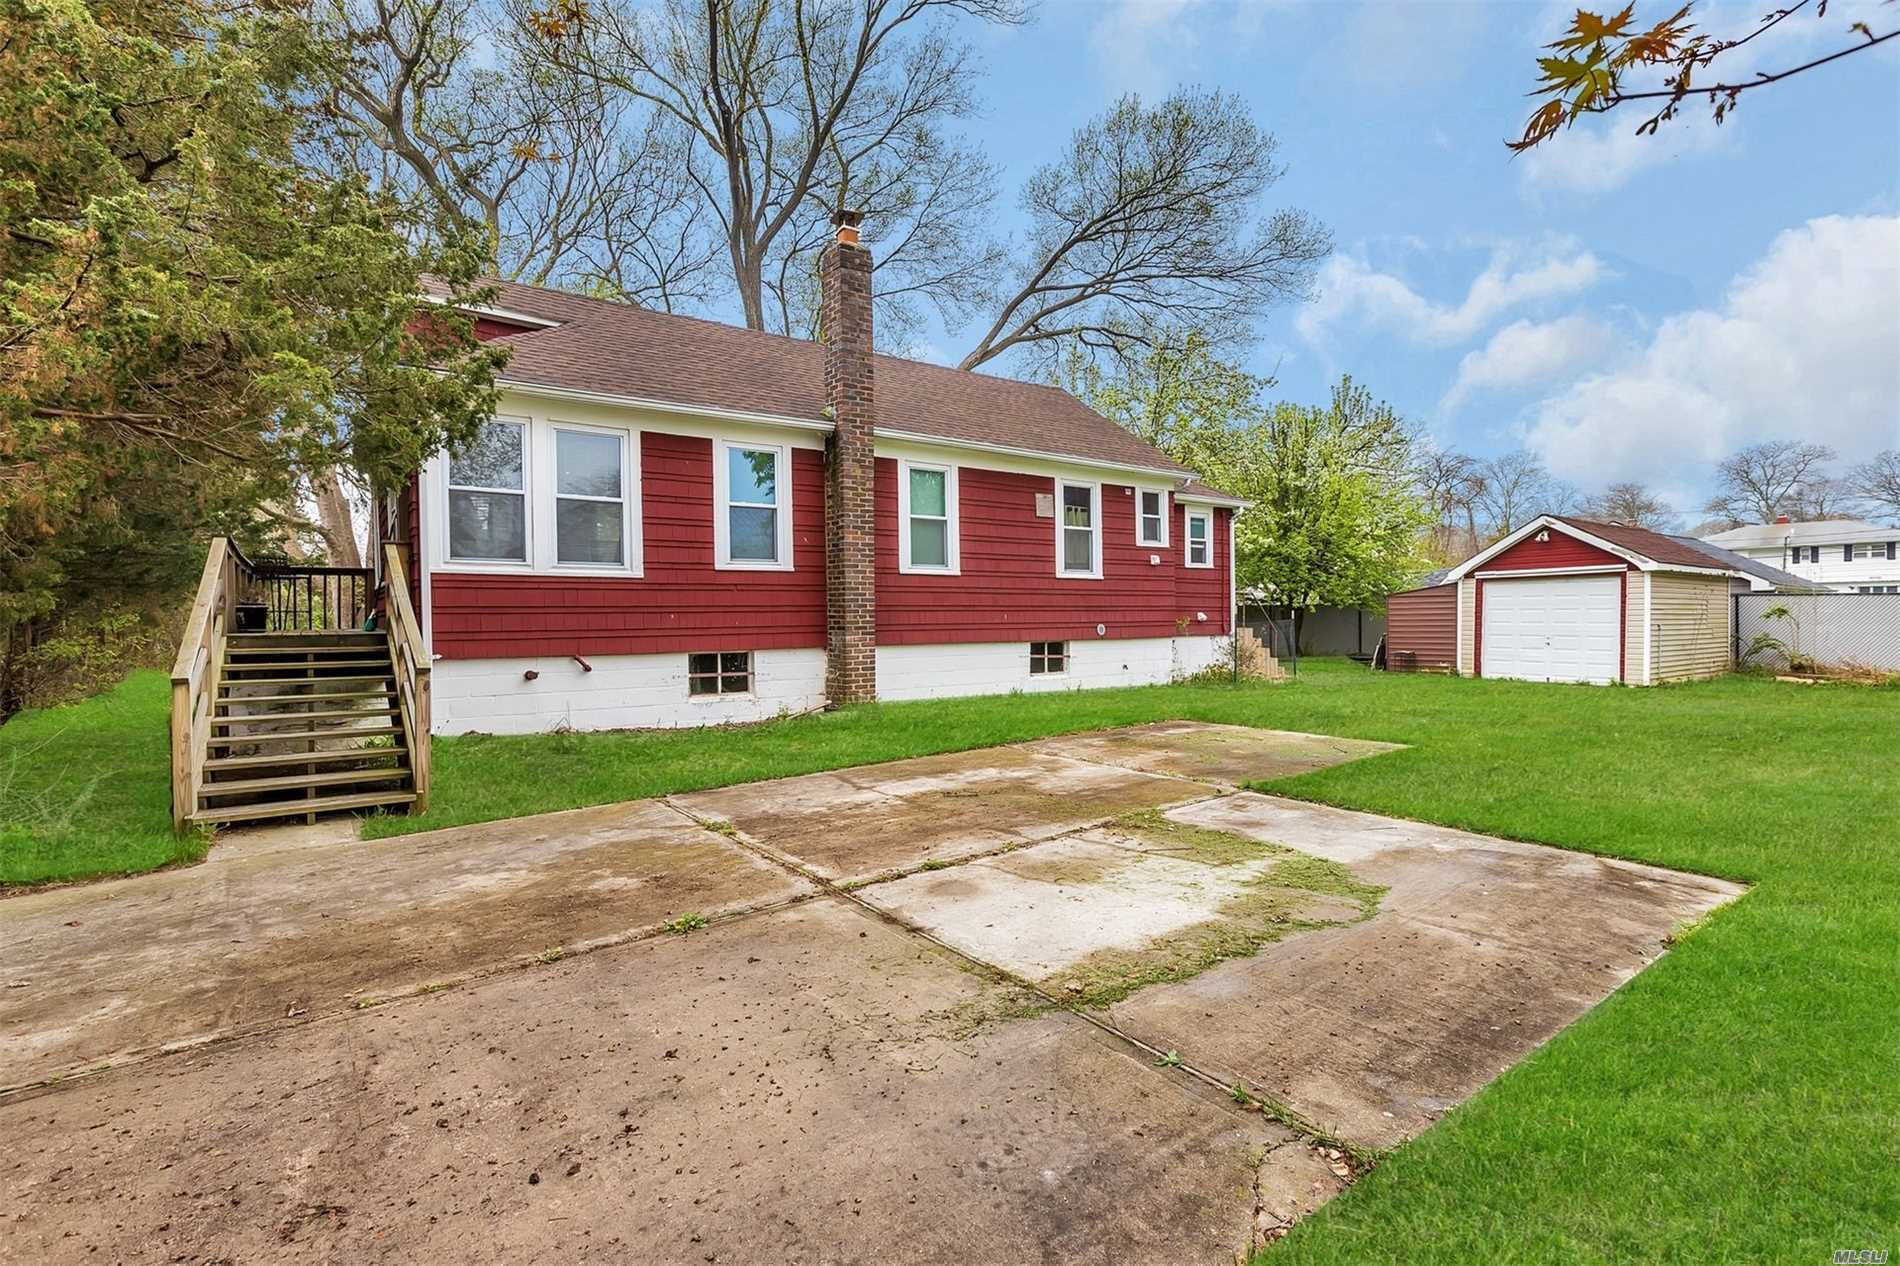 Photo of home for sale at 80 Diana Dr, Mastic Beach NY